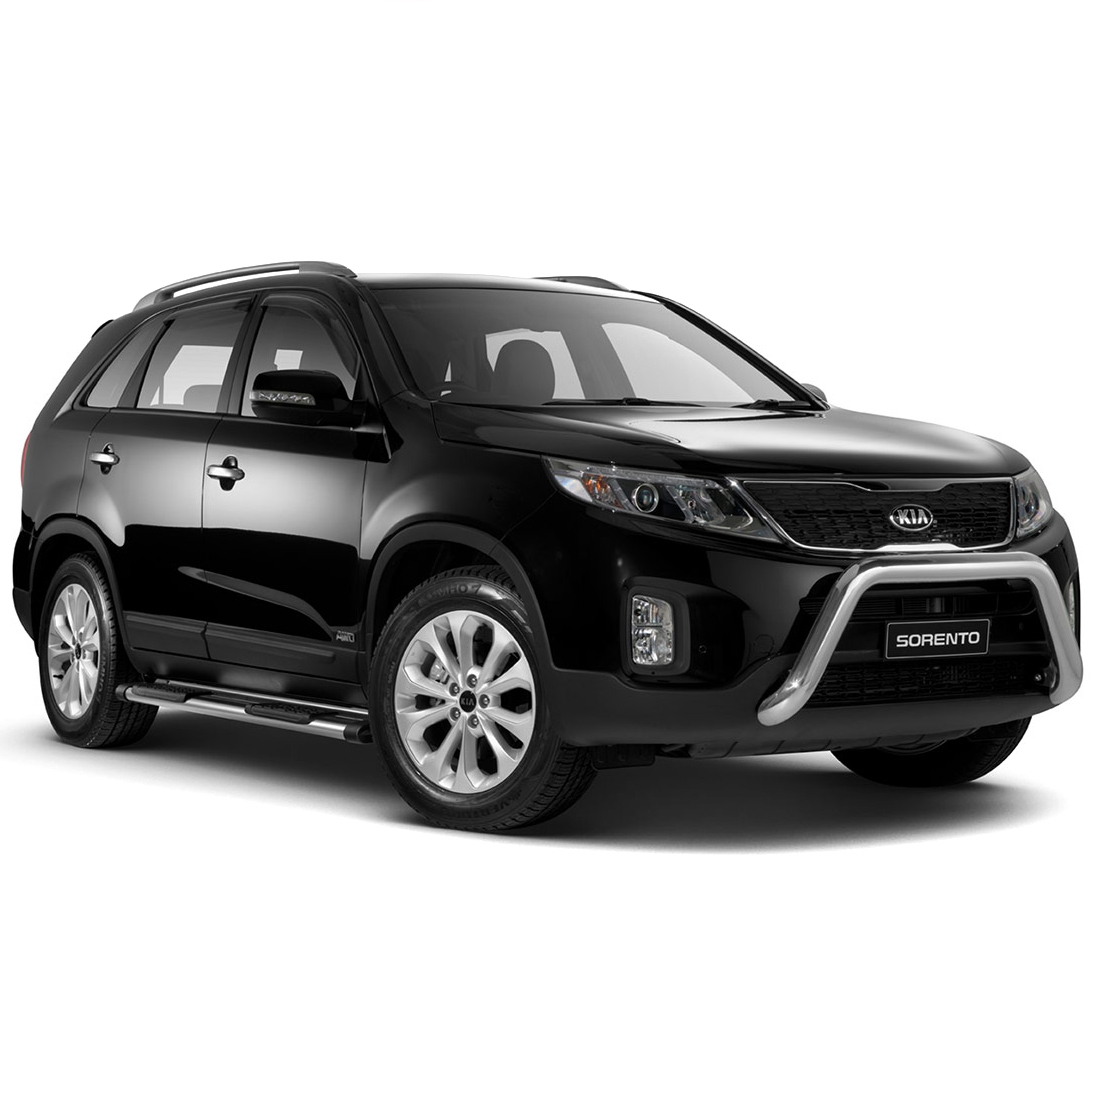 Kia Sorento 7 Seats 2015 Onwards